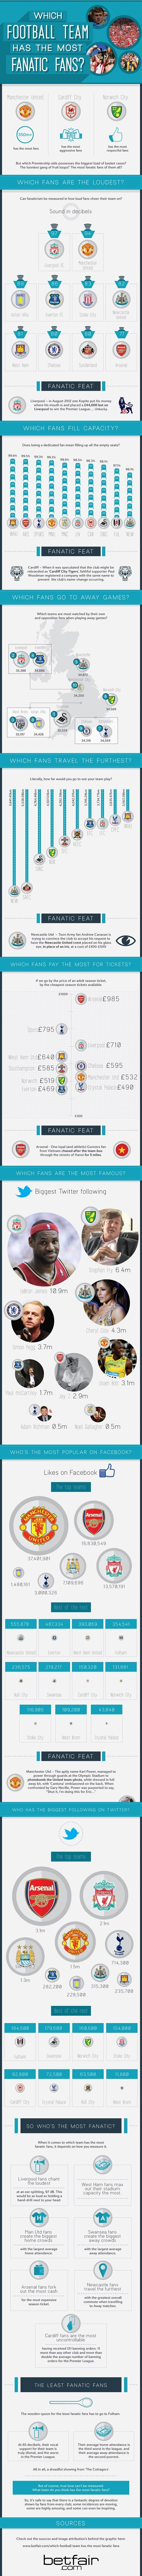 infographic,fans,sports,soccer